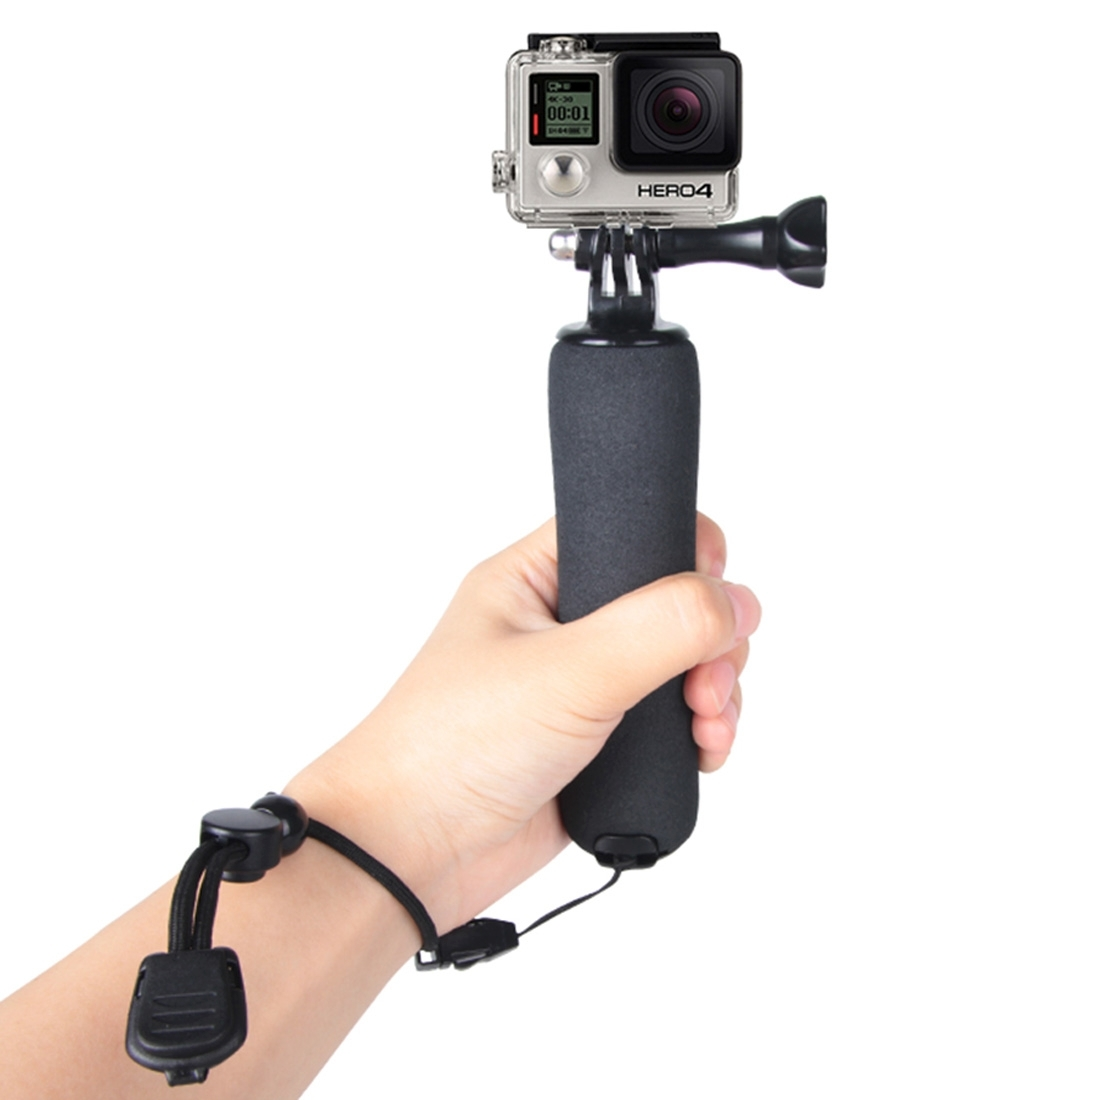 Go Pro Accessories Bobber Floating Handle Grip Mini Tripod monopod Mount for GoPro HERO4/3+/3/2/1& for Xiaomi Yi / SJCAM Camera